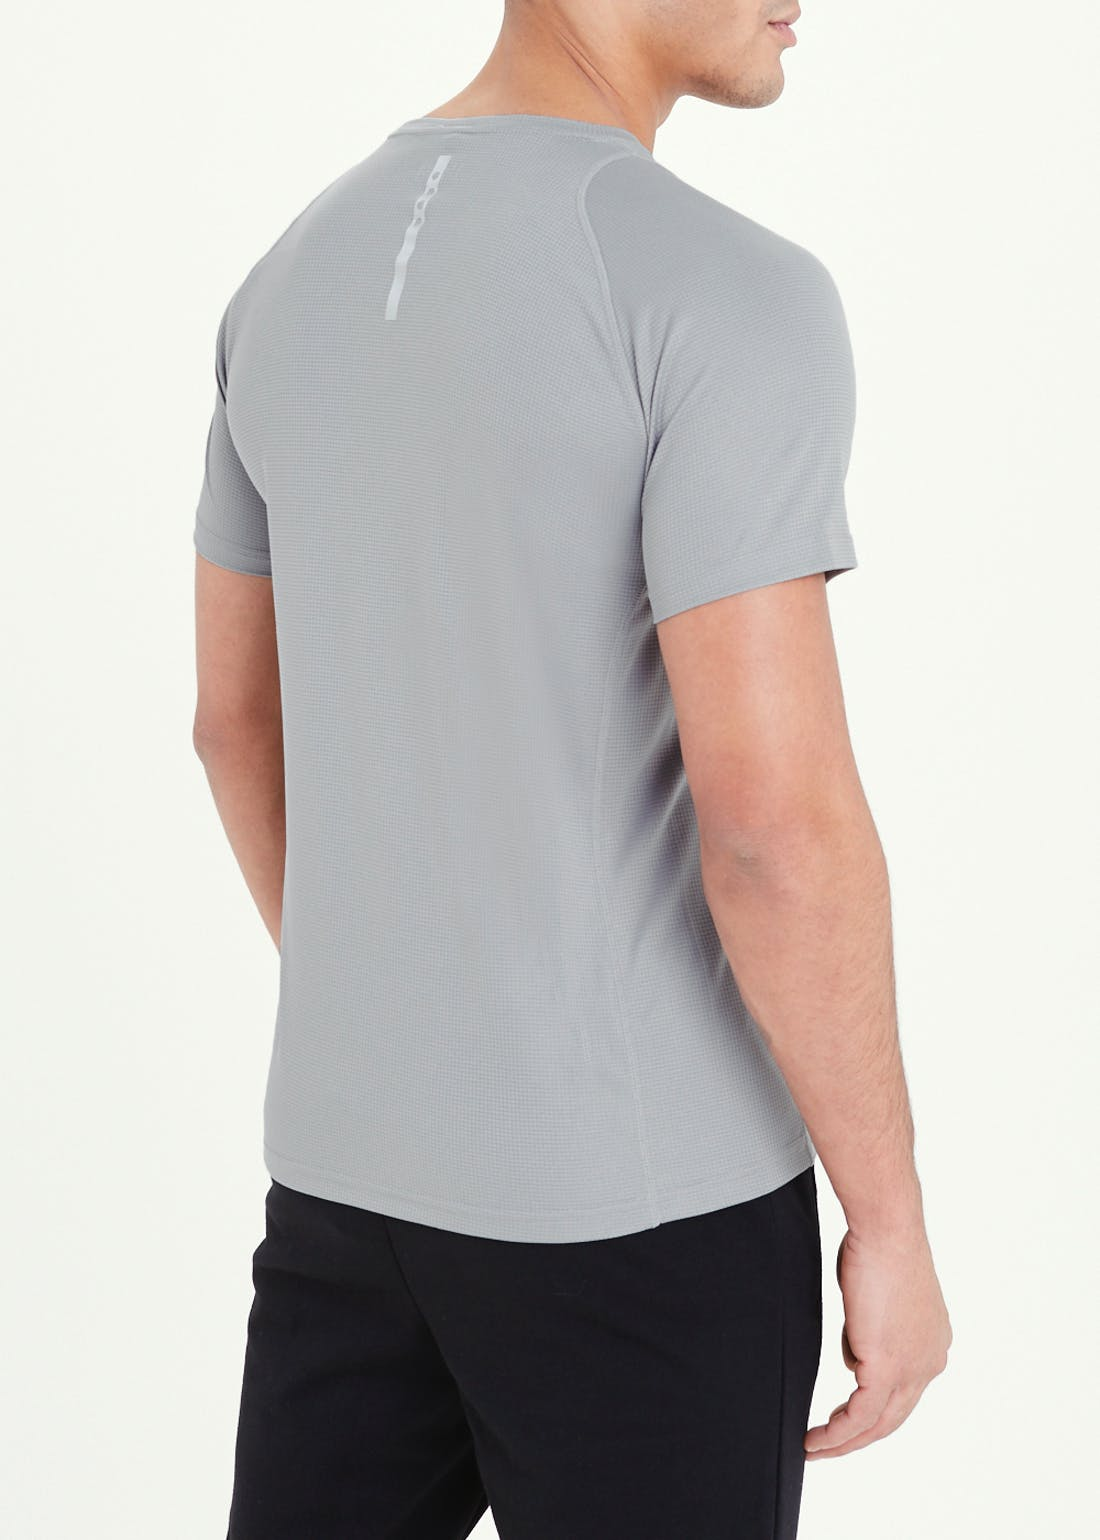 Souluxe Grey Textured Basic Gym Top